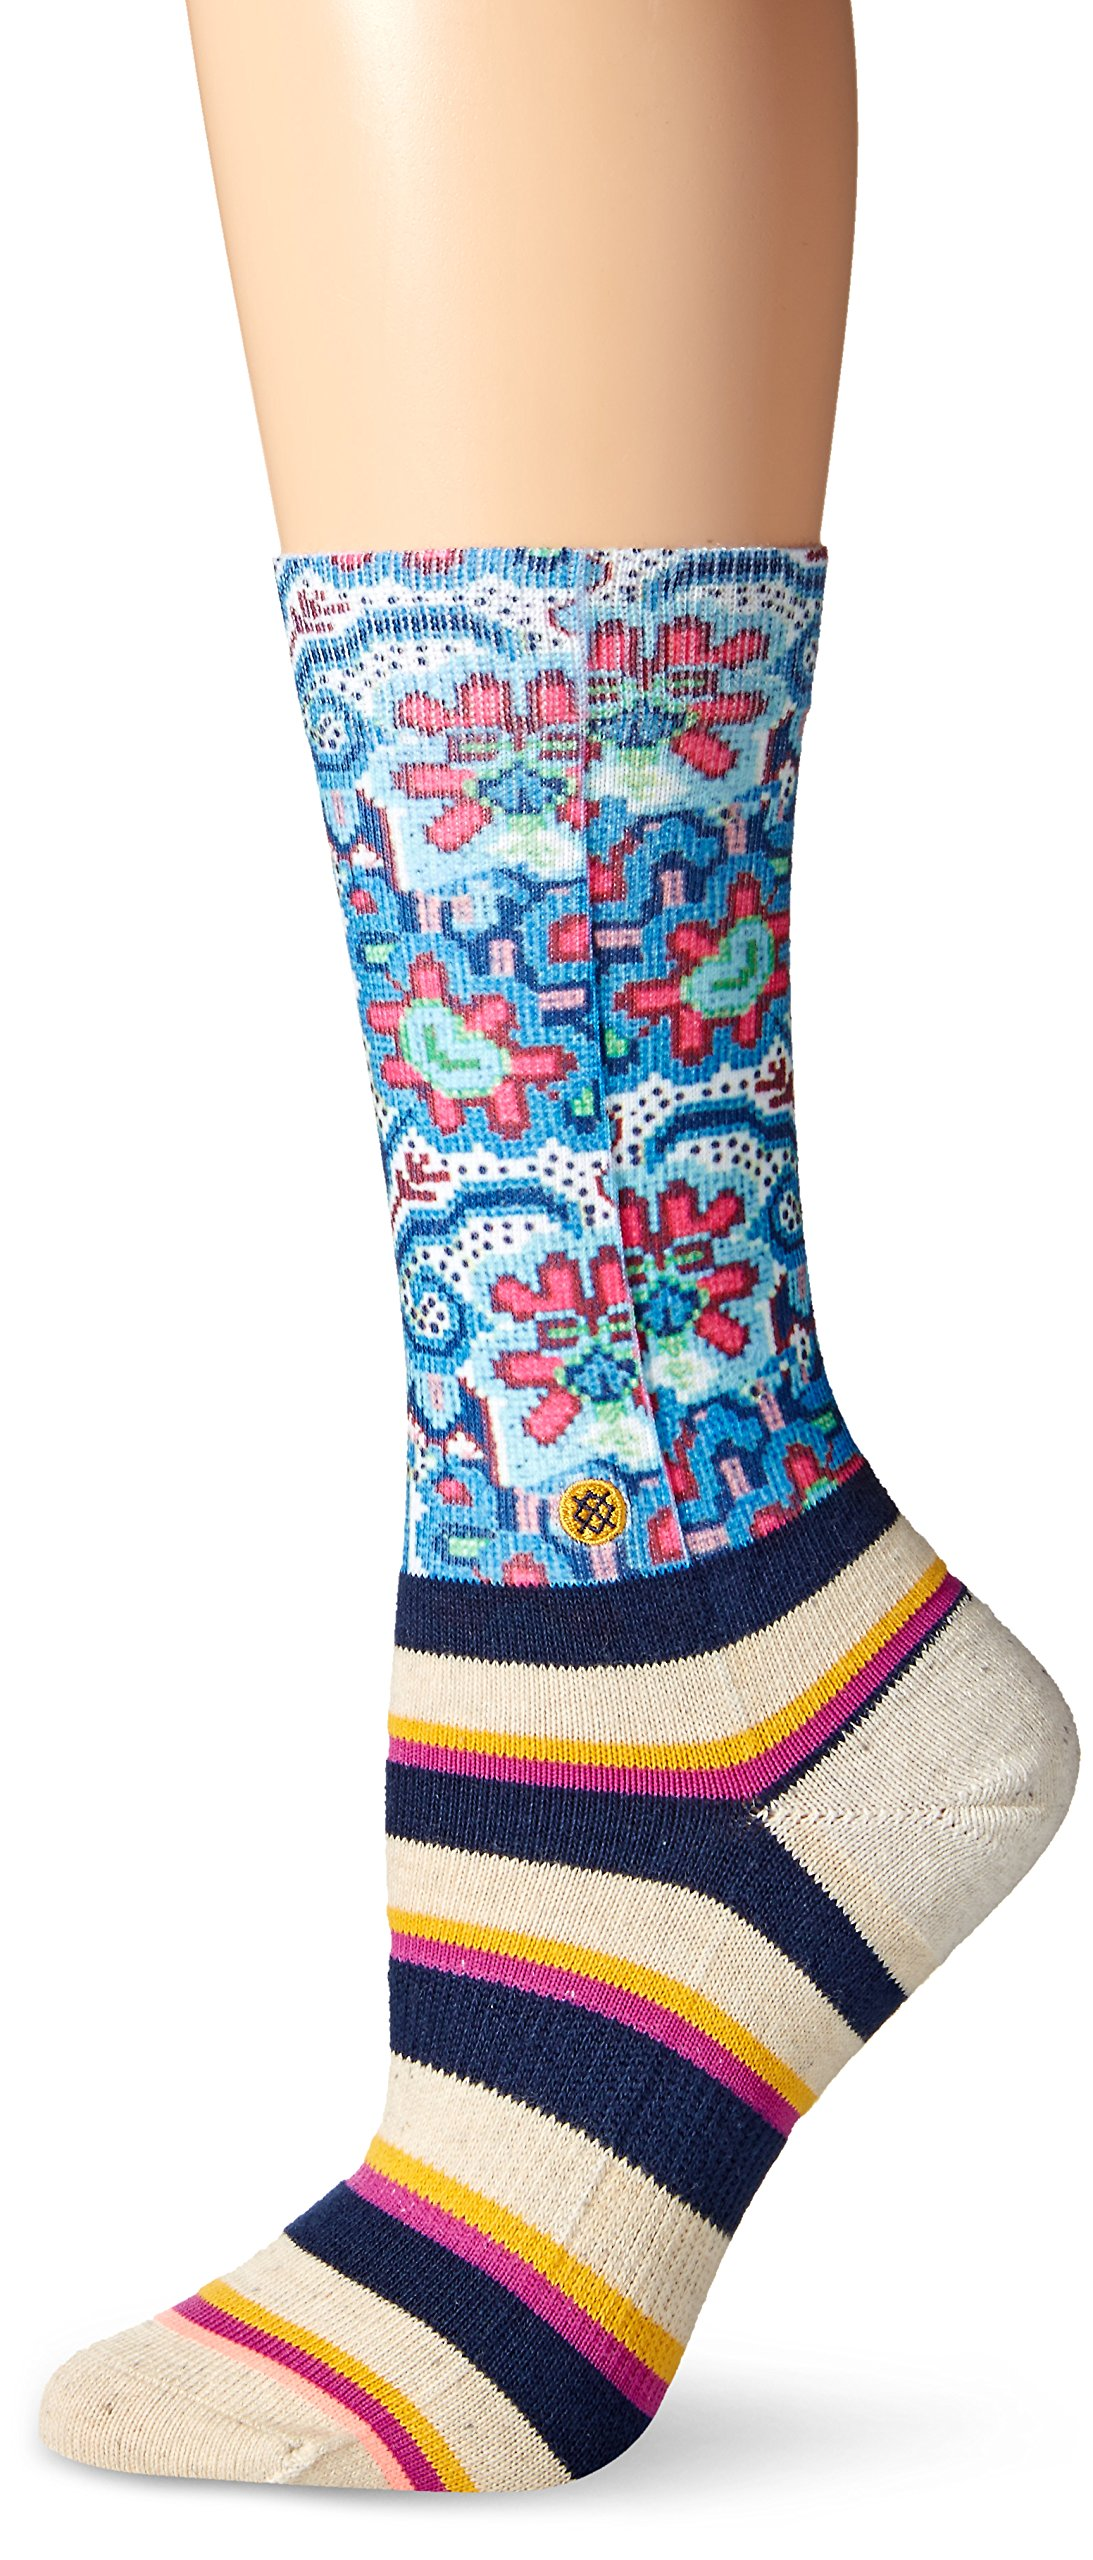 Stance Women's Bella Vida Tomboy Crew Sock, Navy, Small